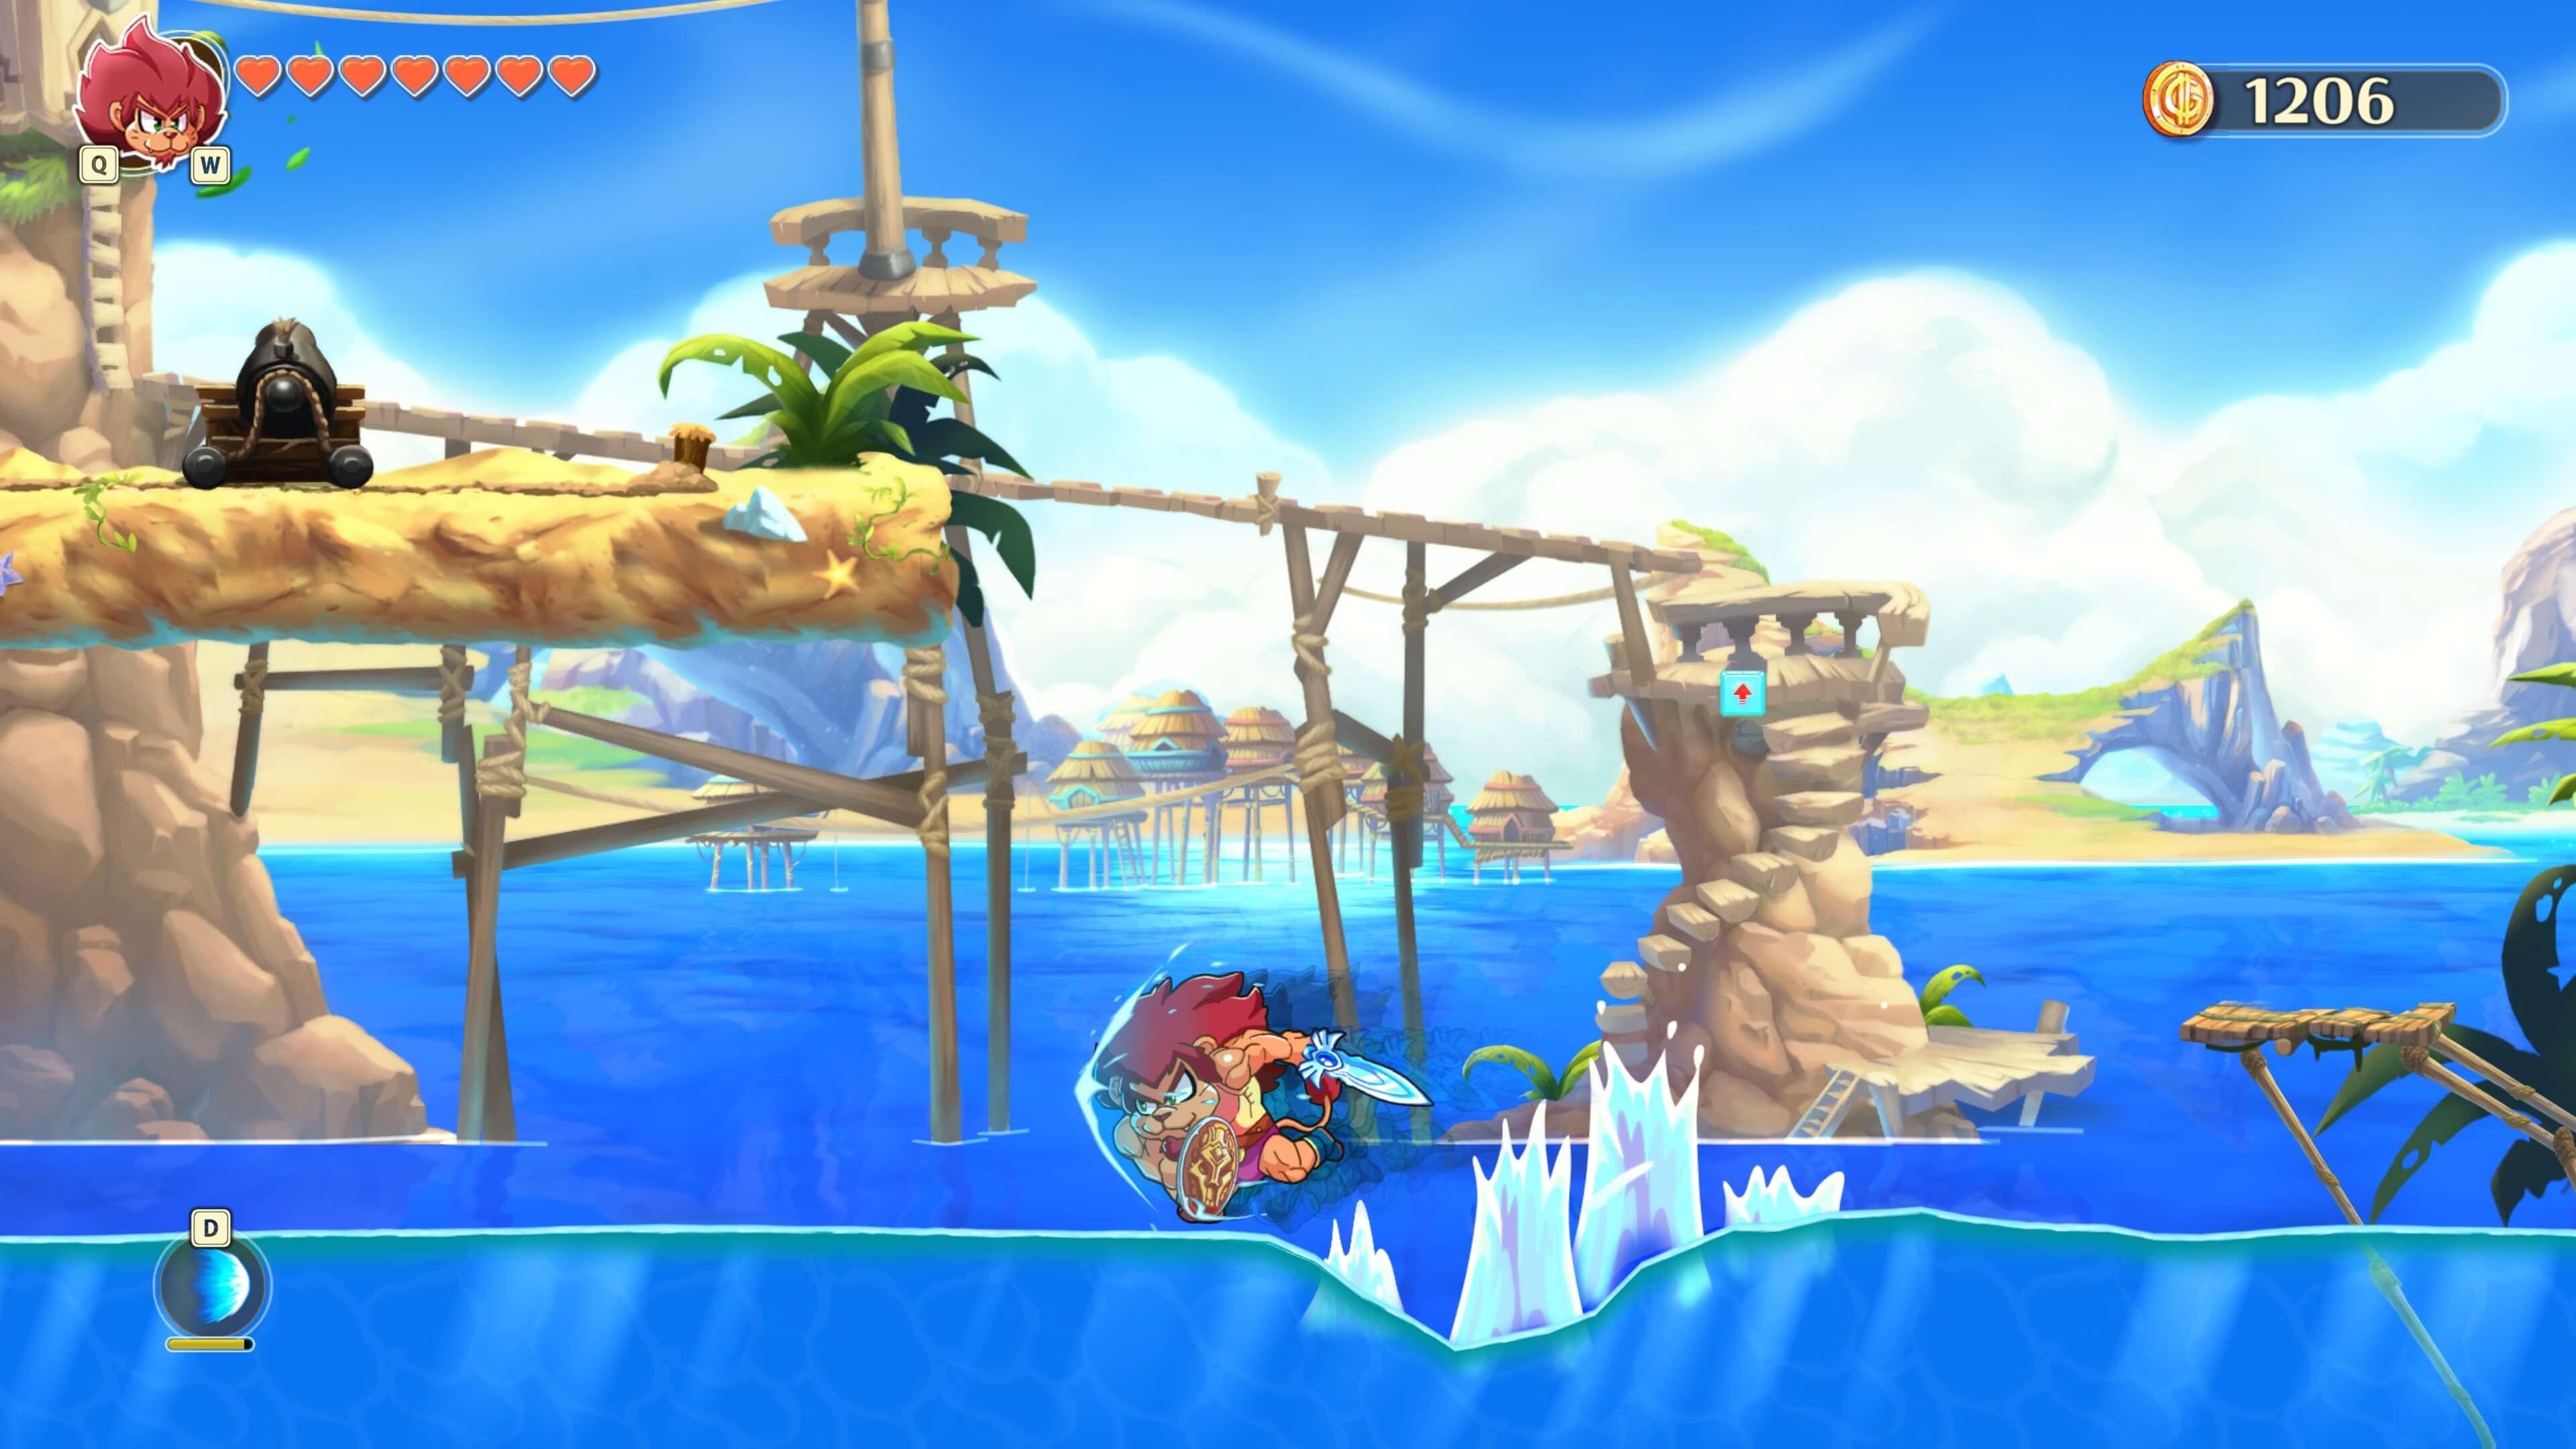 Monster Boy and the Cursed Kingdom Review - DSOGaming